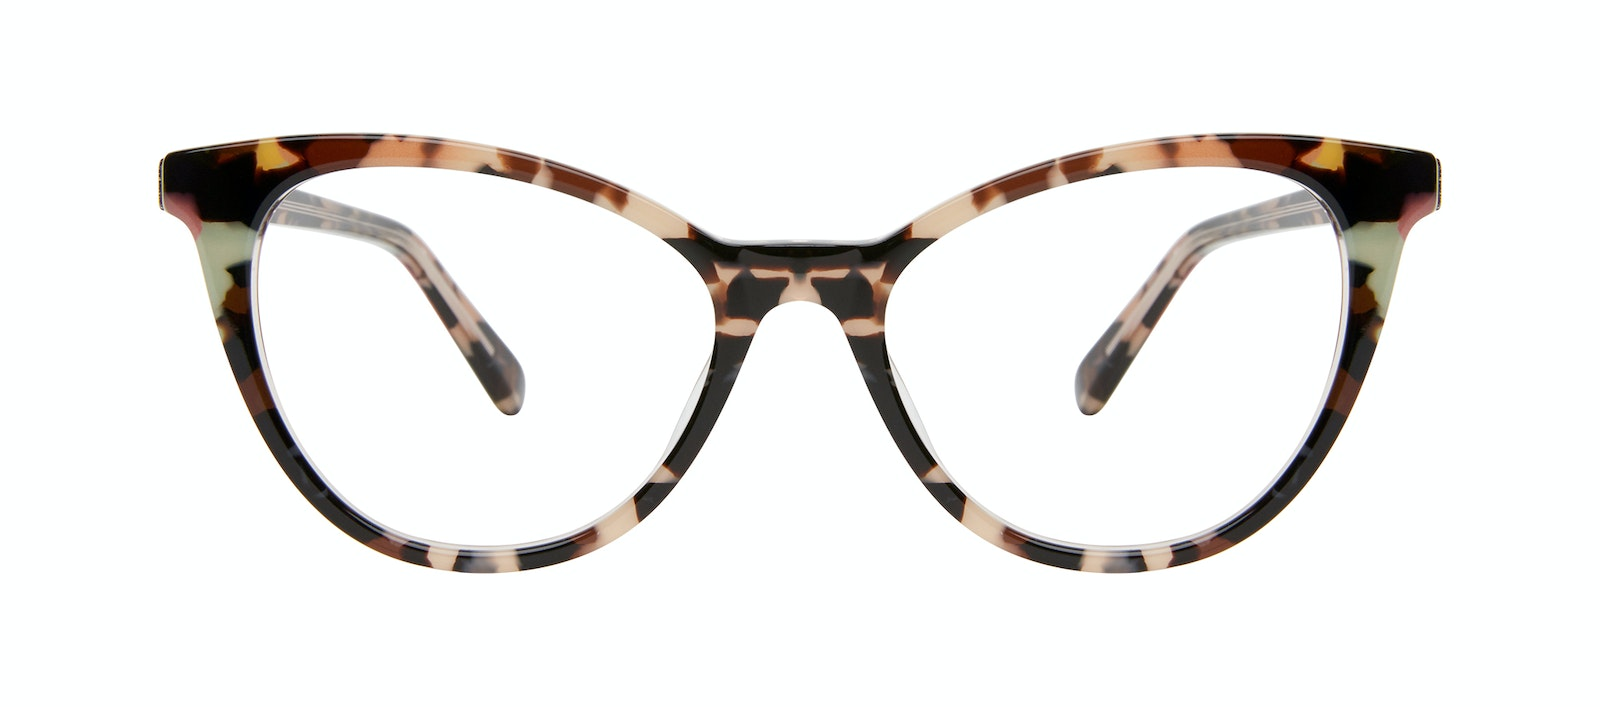 Affordable Fashion Glasses Cat Eye Eyeglasses Women Victoire M Pastel Tort Front